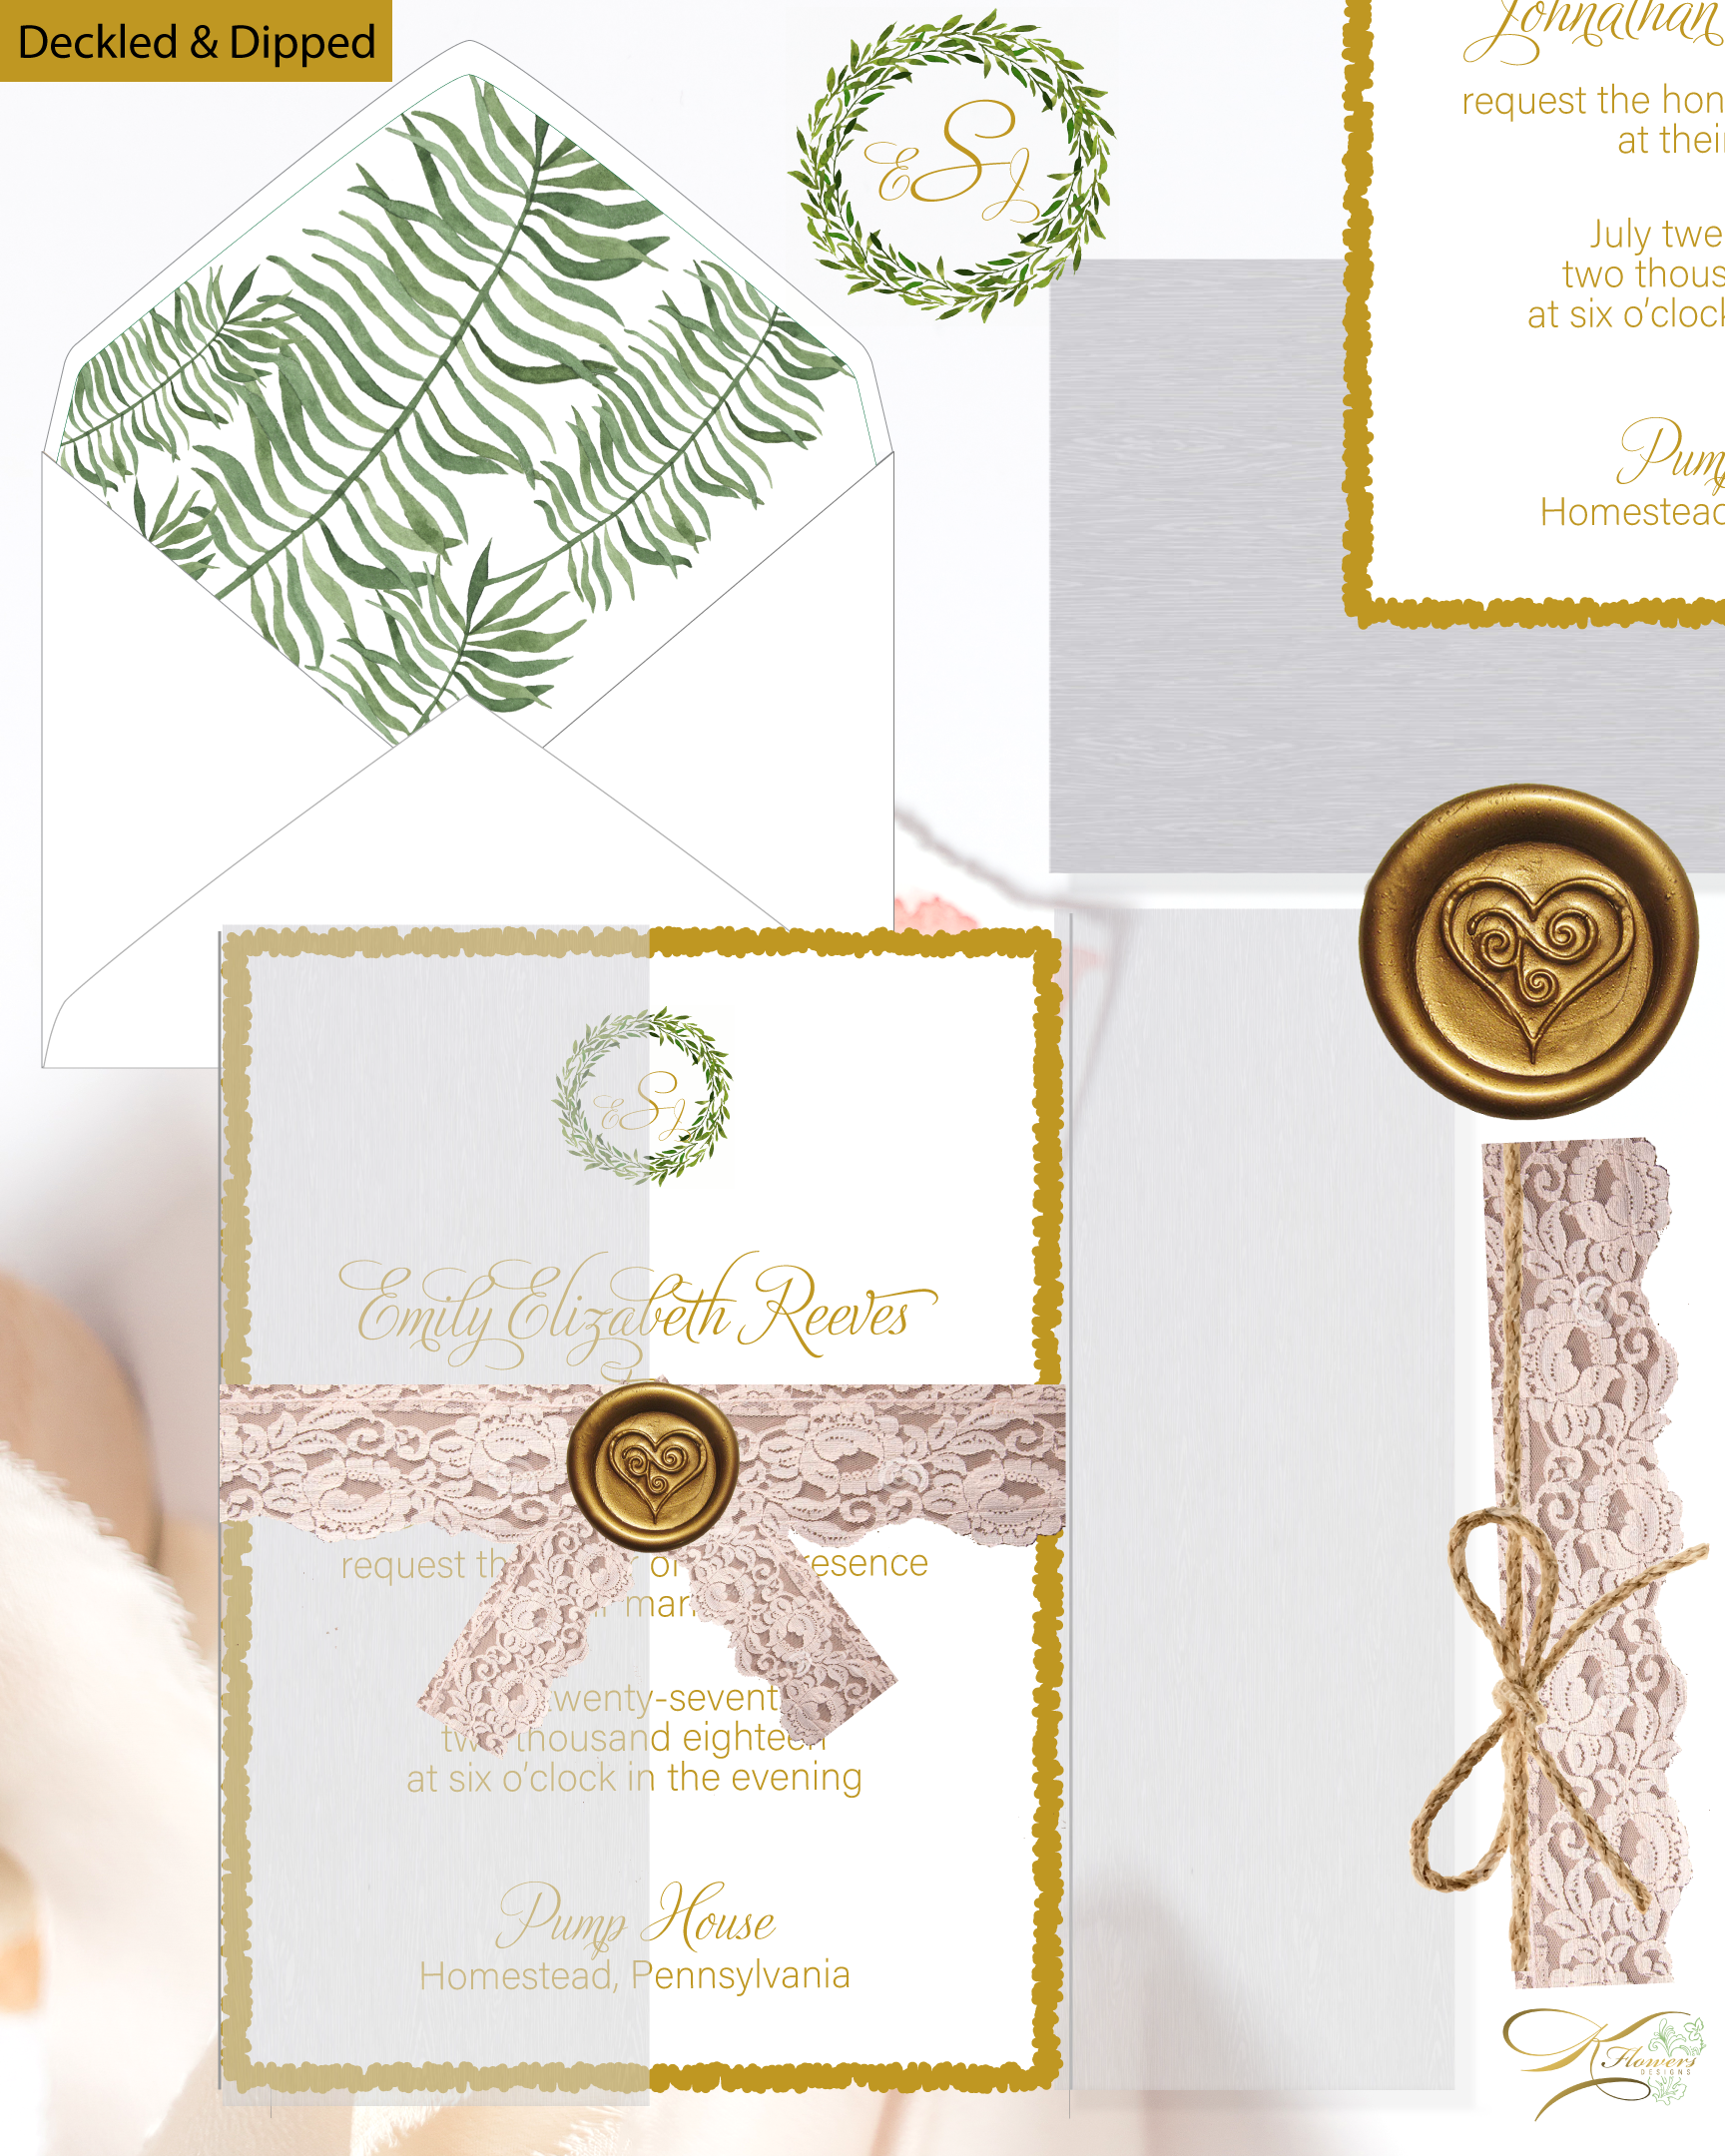 Design - I design a CUSTOM SAMPLE including all the details an elements that are important to you. I send you a DIGITAL PROOF of your INVITATION WORDING and DESIGN. You may request edits and/or changes at this time. We're done when you're HAPPY.